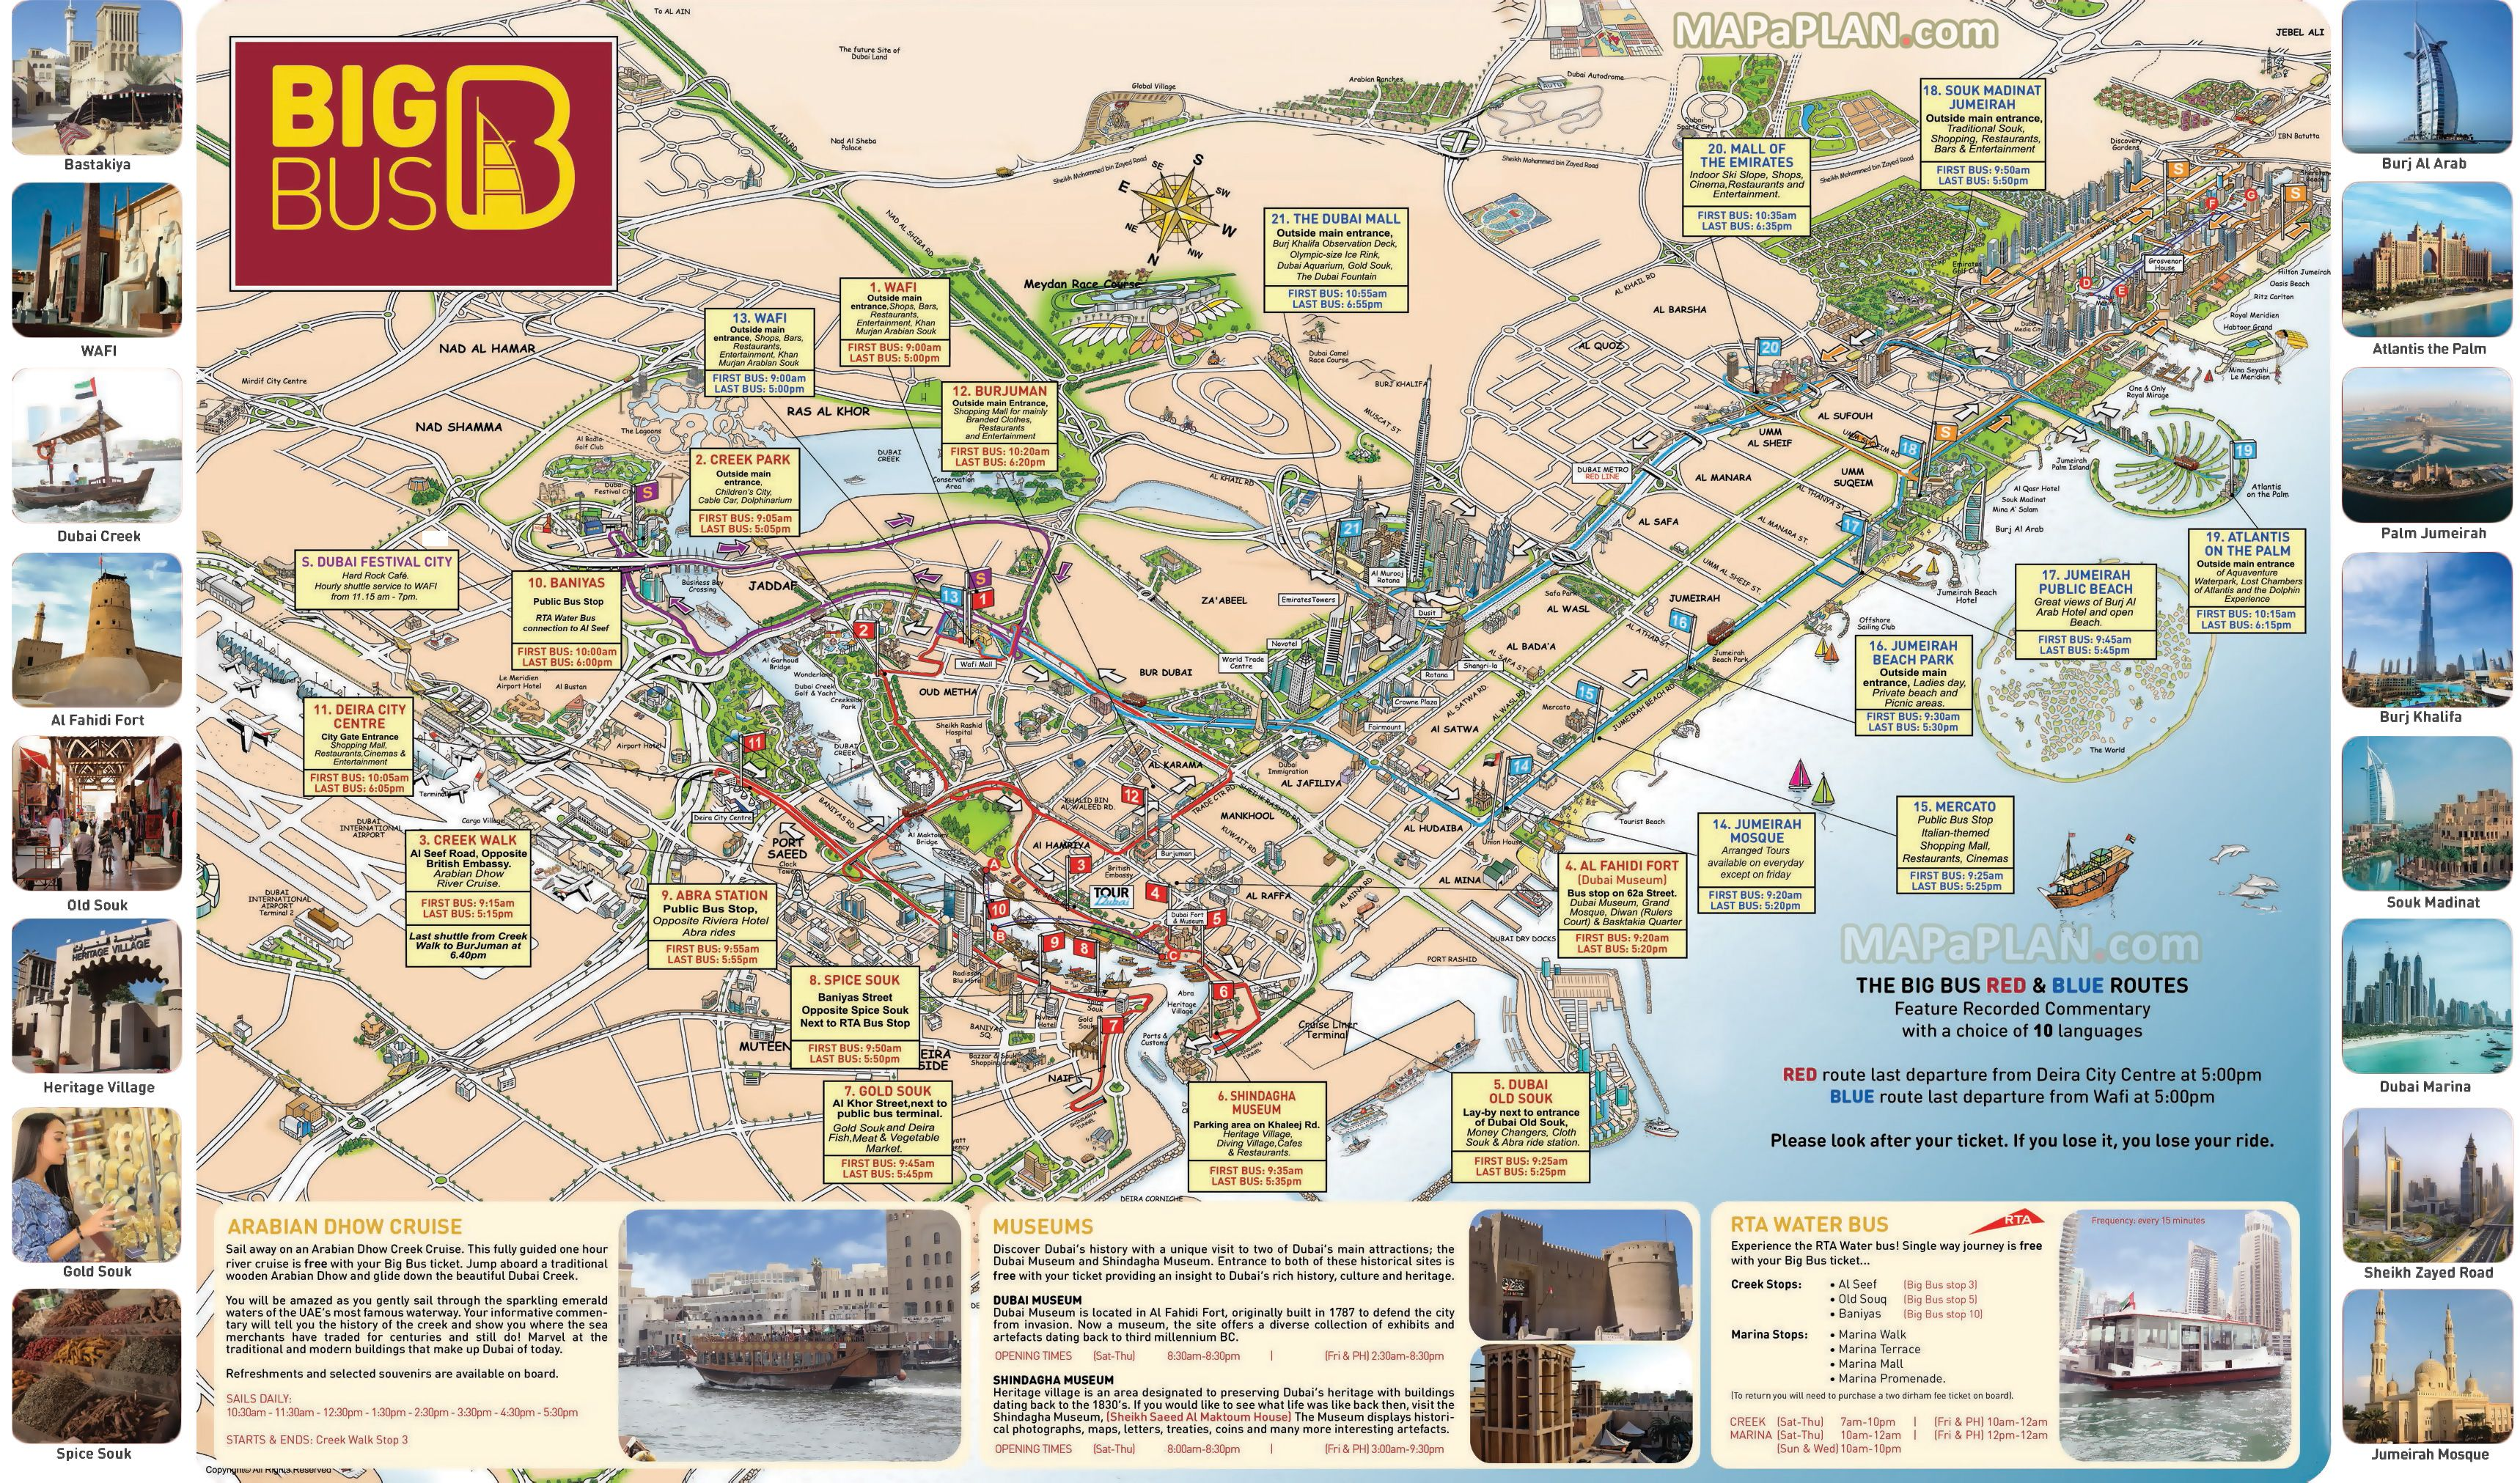 Hop-on hop-off Big Bus sightseeing tour map | big bus tour world on